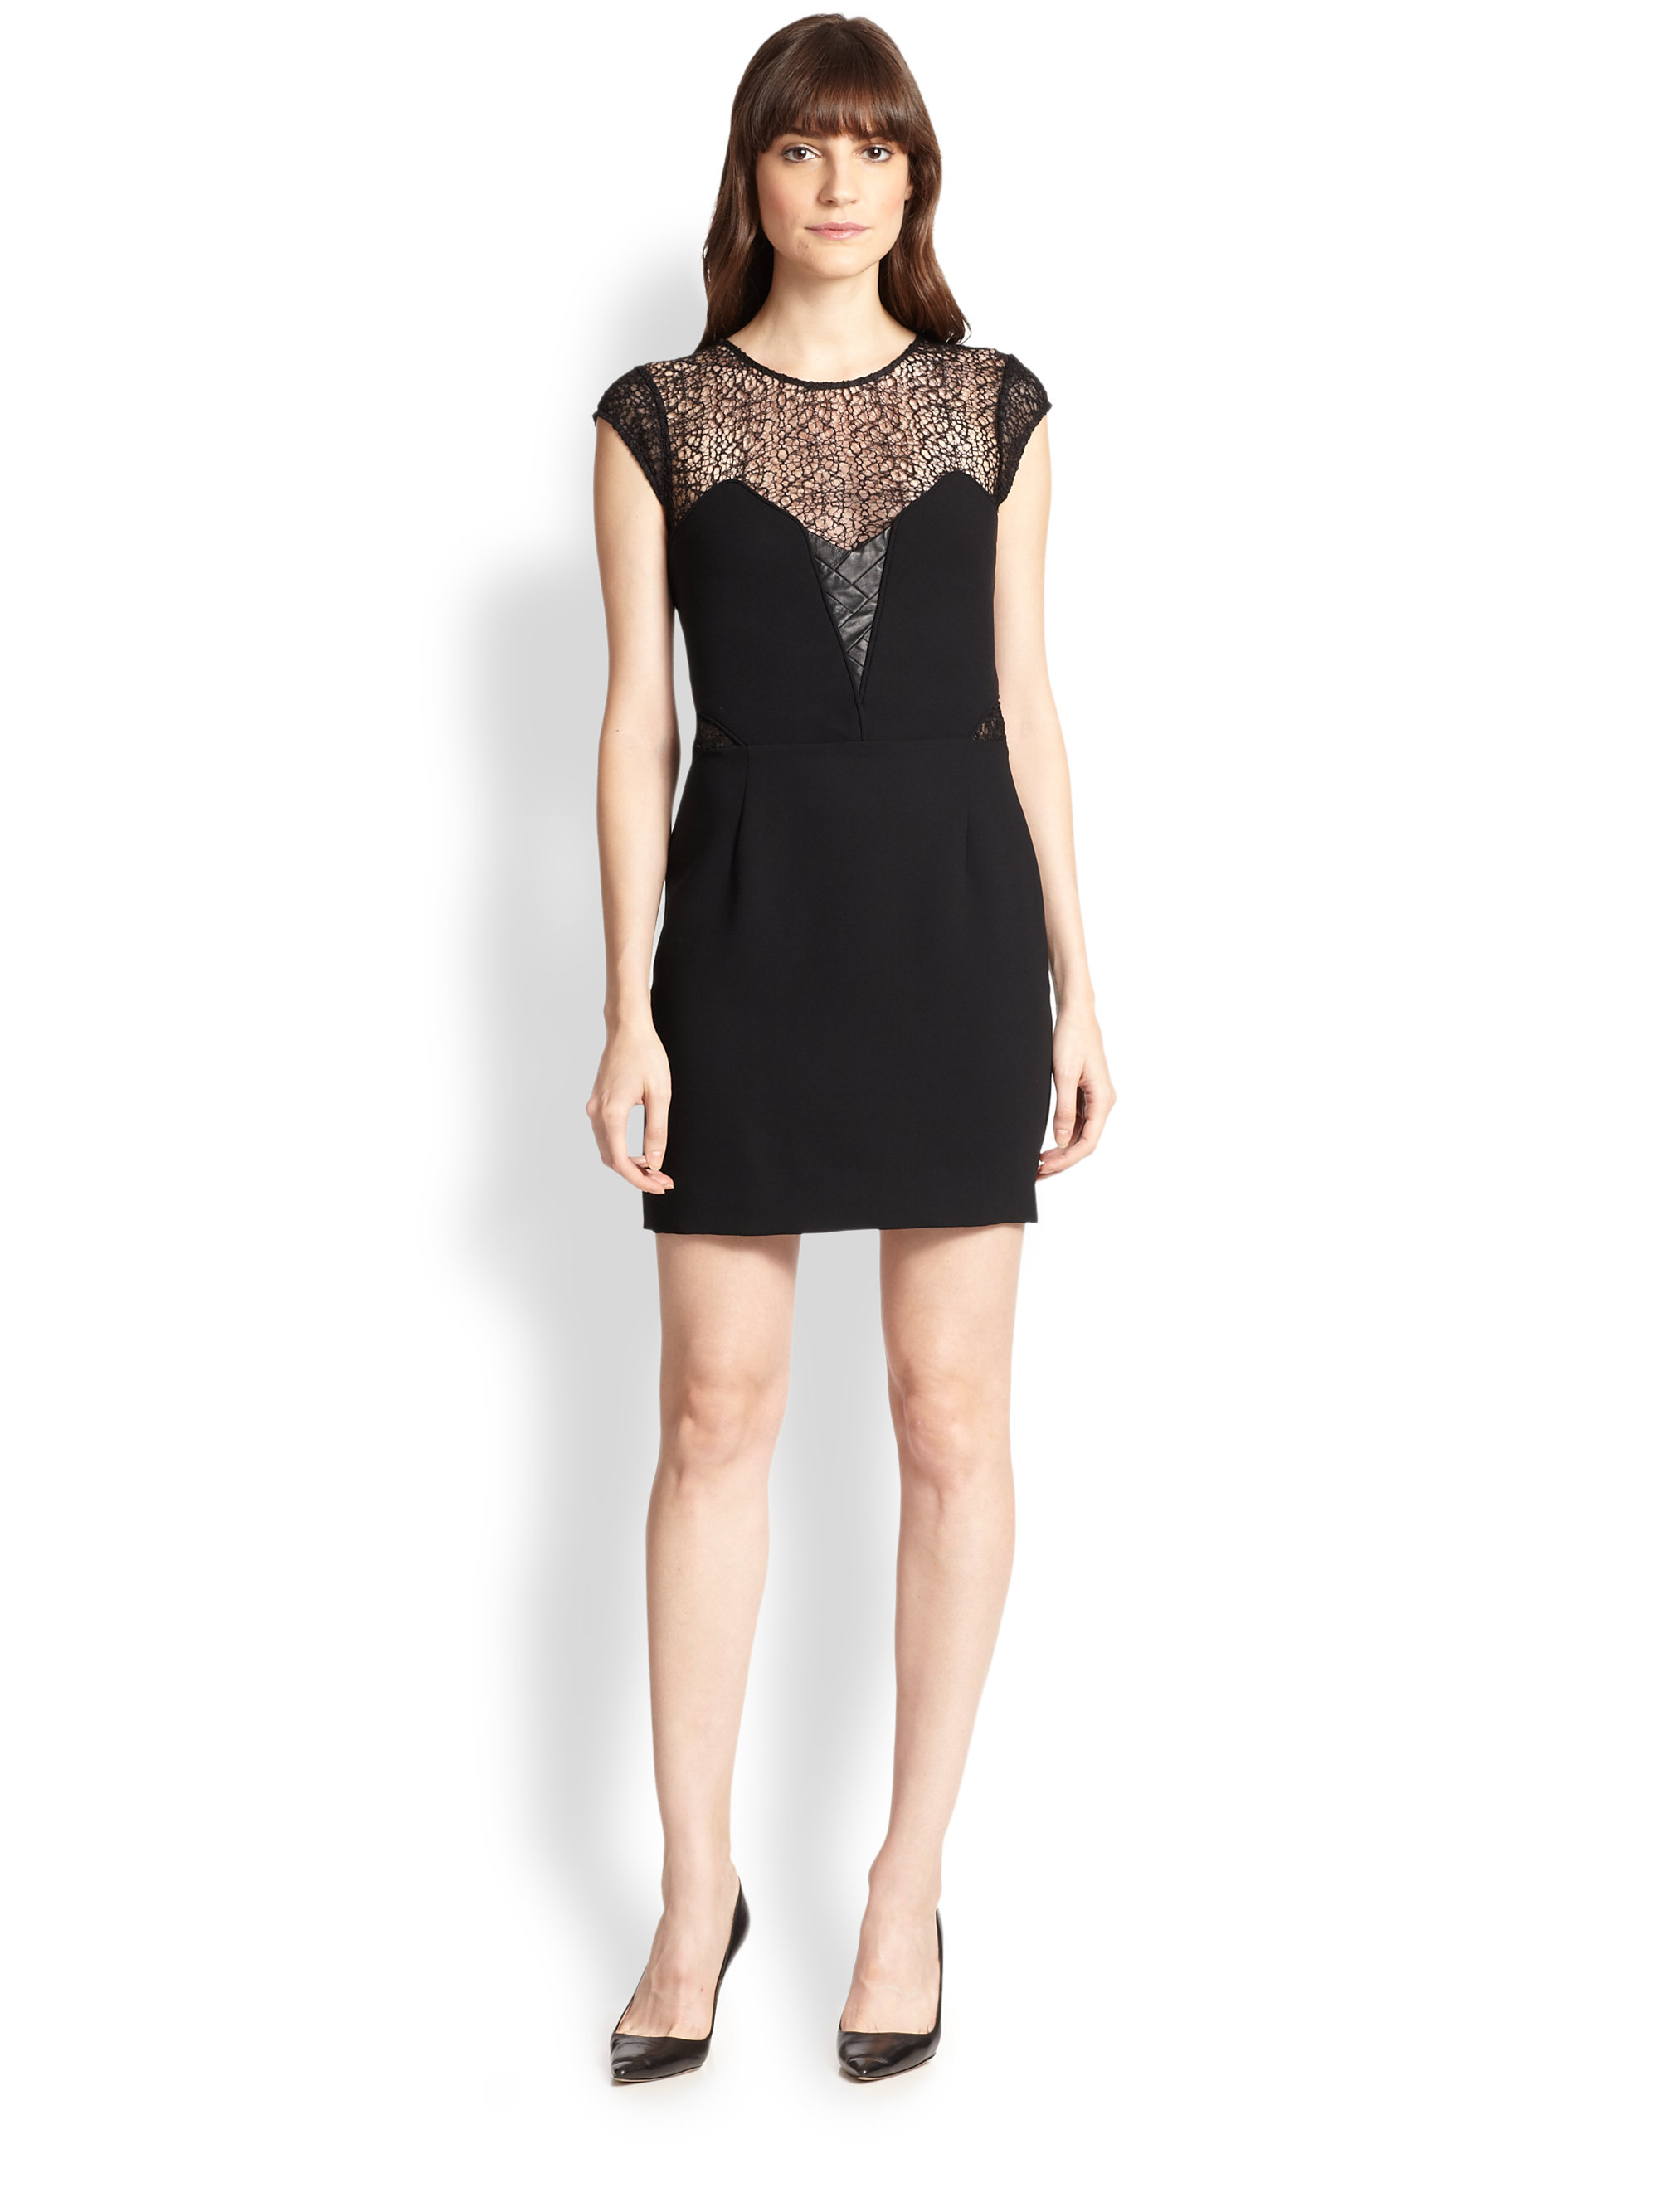 513e5c43aa7 The Kooples Lace Illusion Dress in Black - Lyst